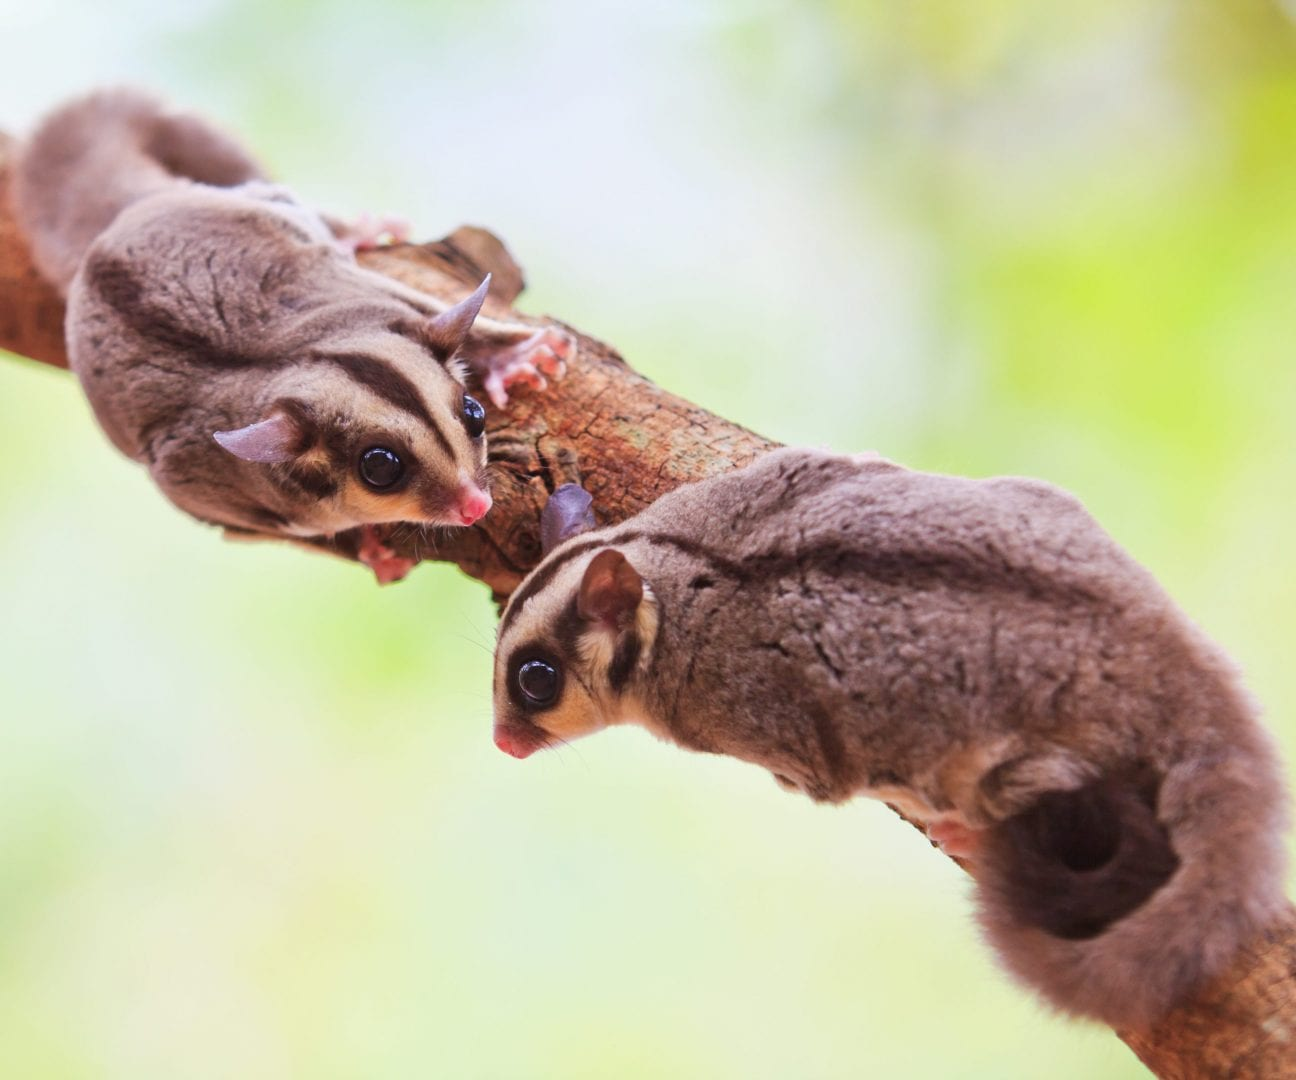 Two sugar gliders on a tree branch